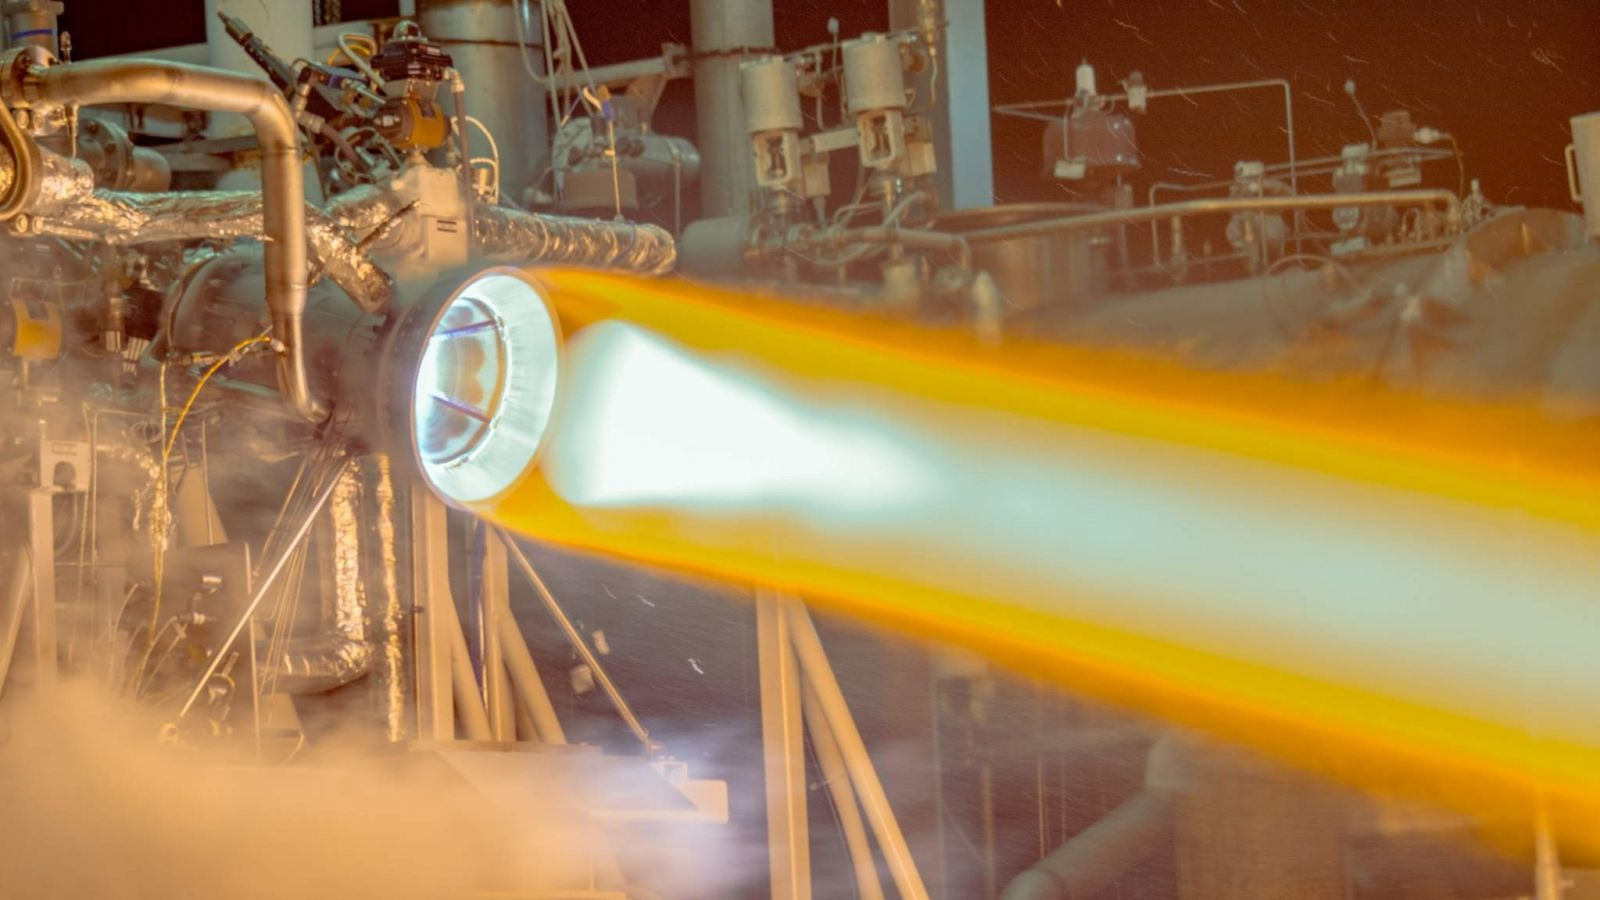 Aerojet Rocketdyne tests a full-scale, 3-D printed thrust chamber for the company's RL10 engine. Photo Credit: Aerojet Rocketdyne